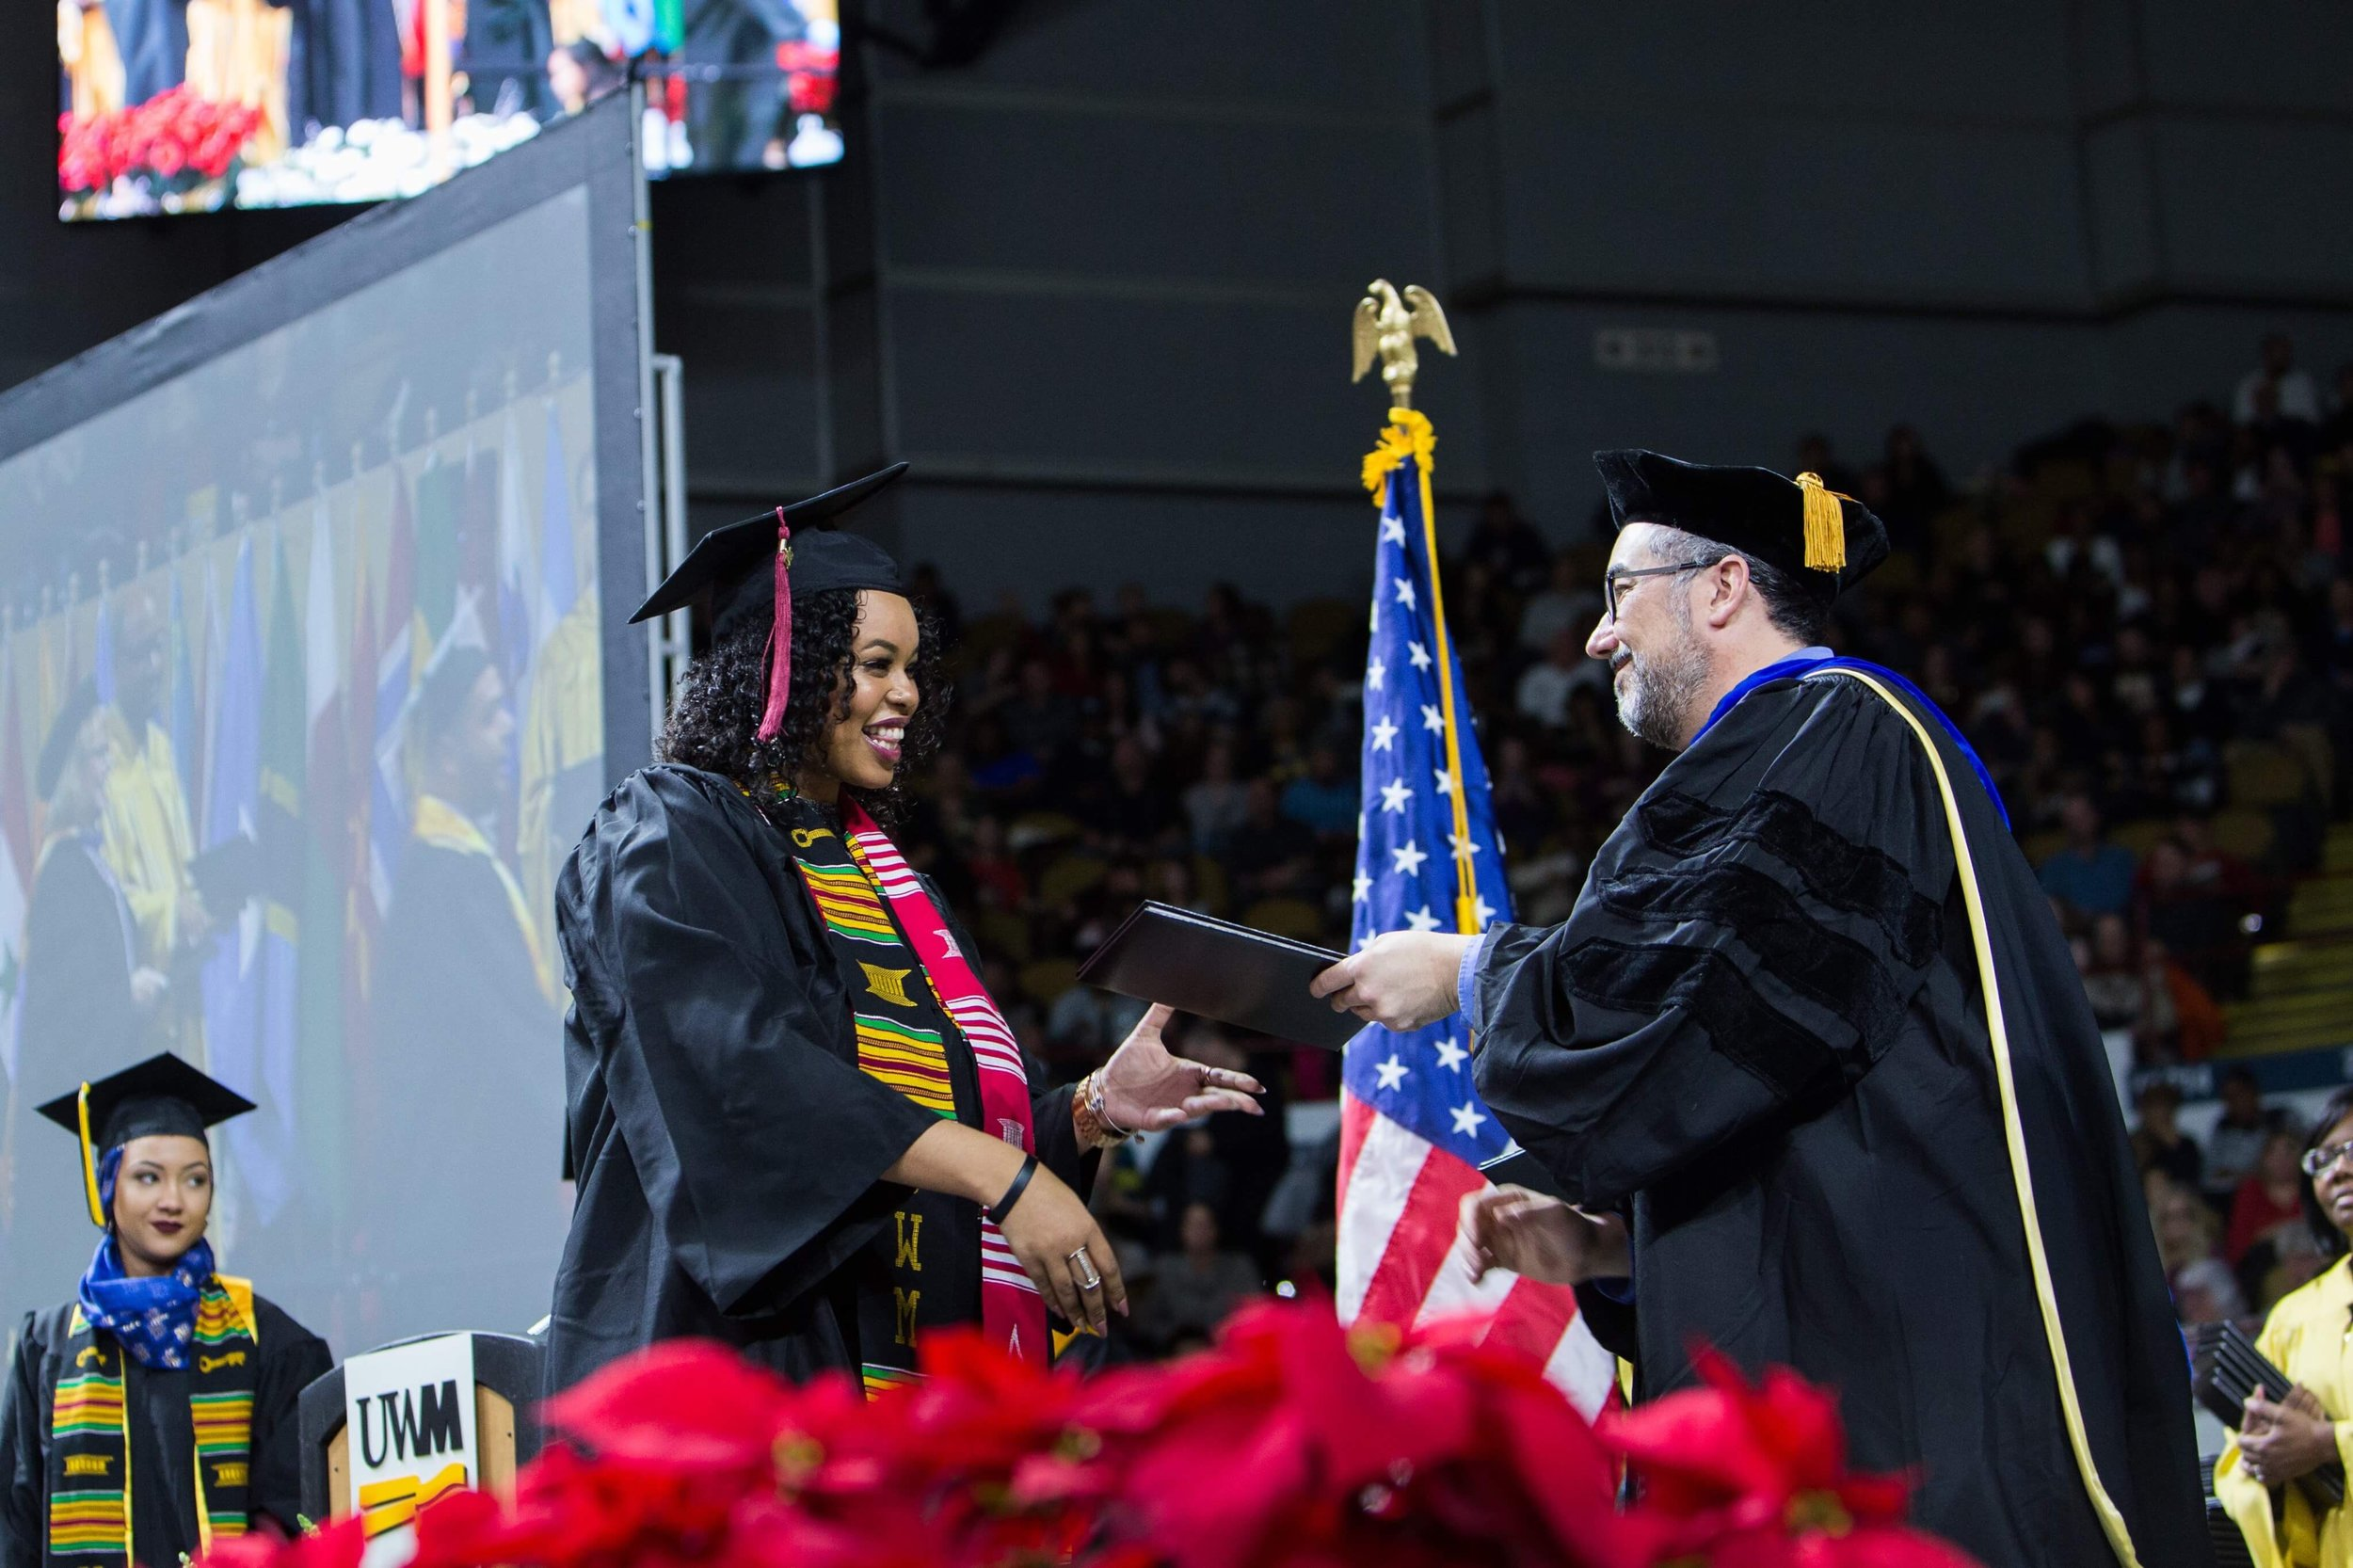 Miela Fetaw accepting her degree from the University of Wisconsin-Milwaukee. (Picture by Elora Hennessey)